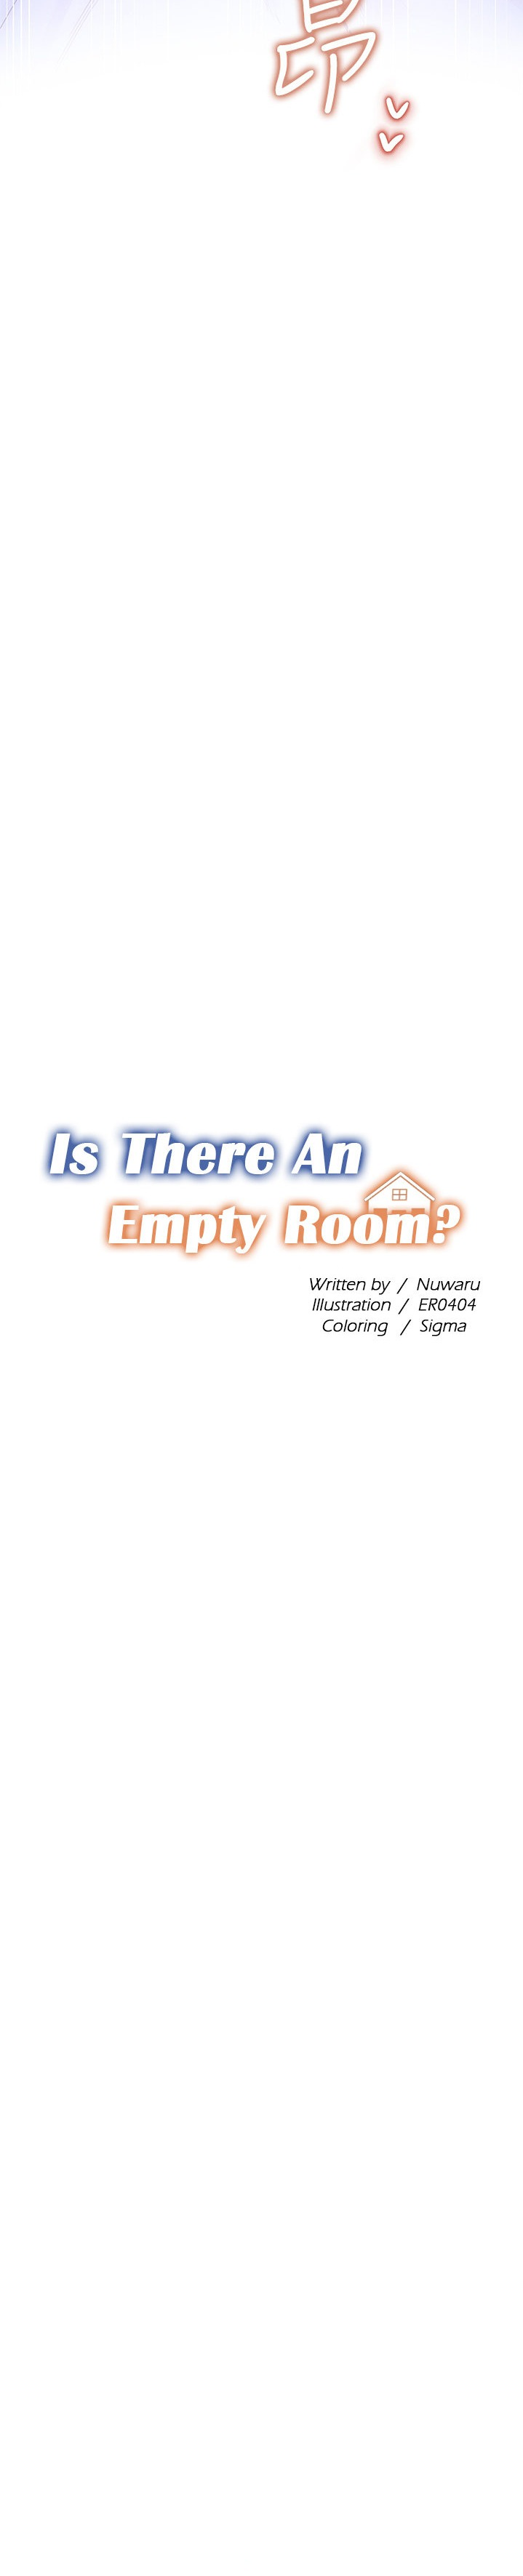 Is there an Empty Room manhwa Chapter 38 - Manhwa18.com